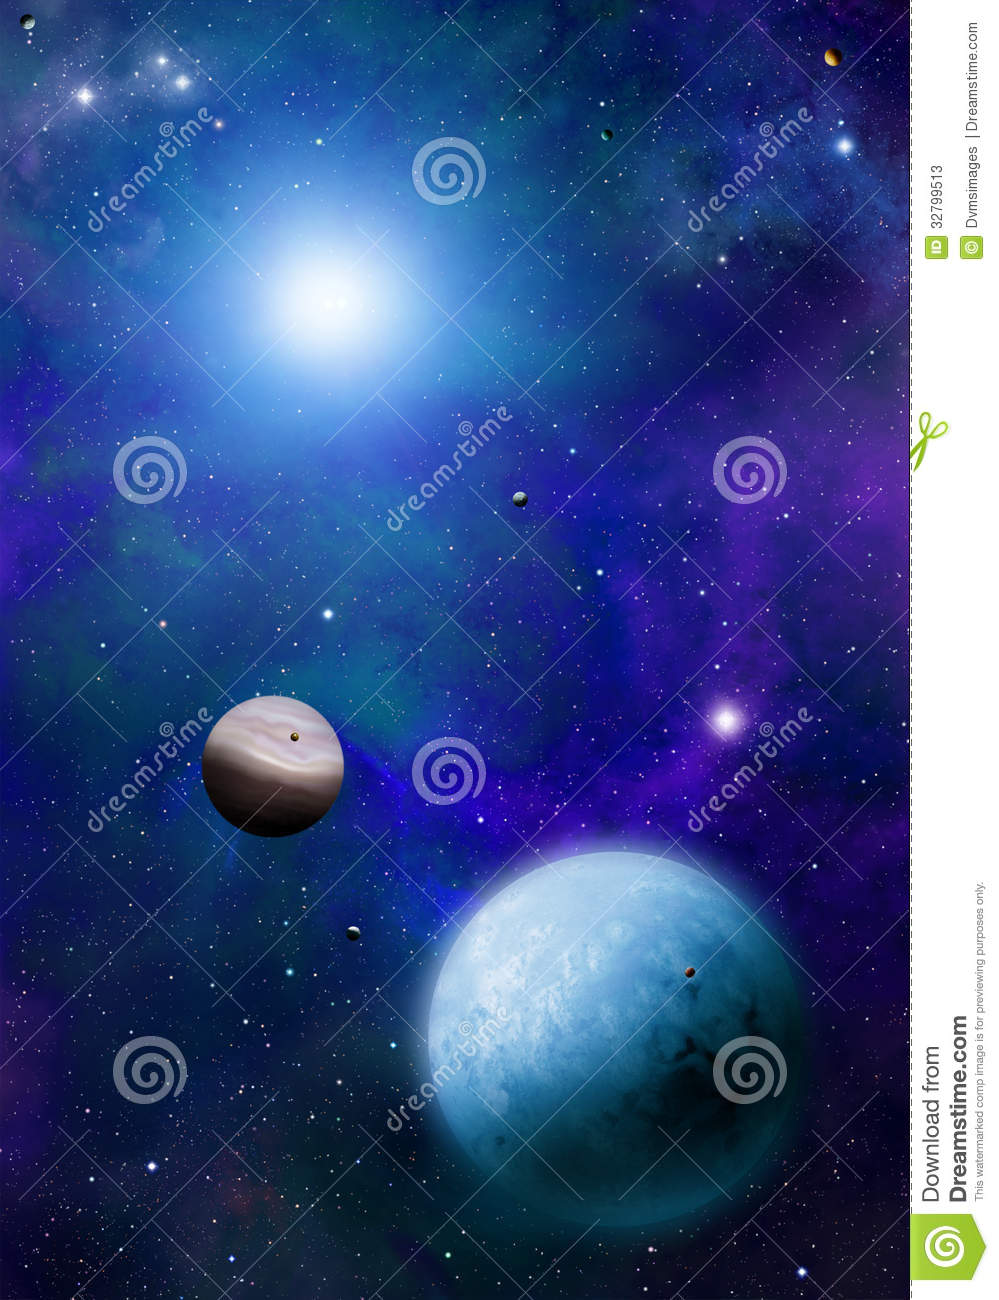 Stars And Planets Stock Photos - Image: 32799513